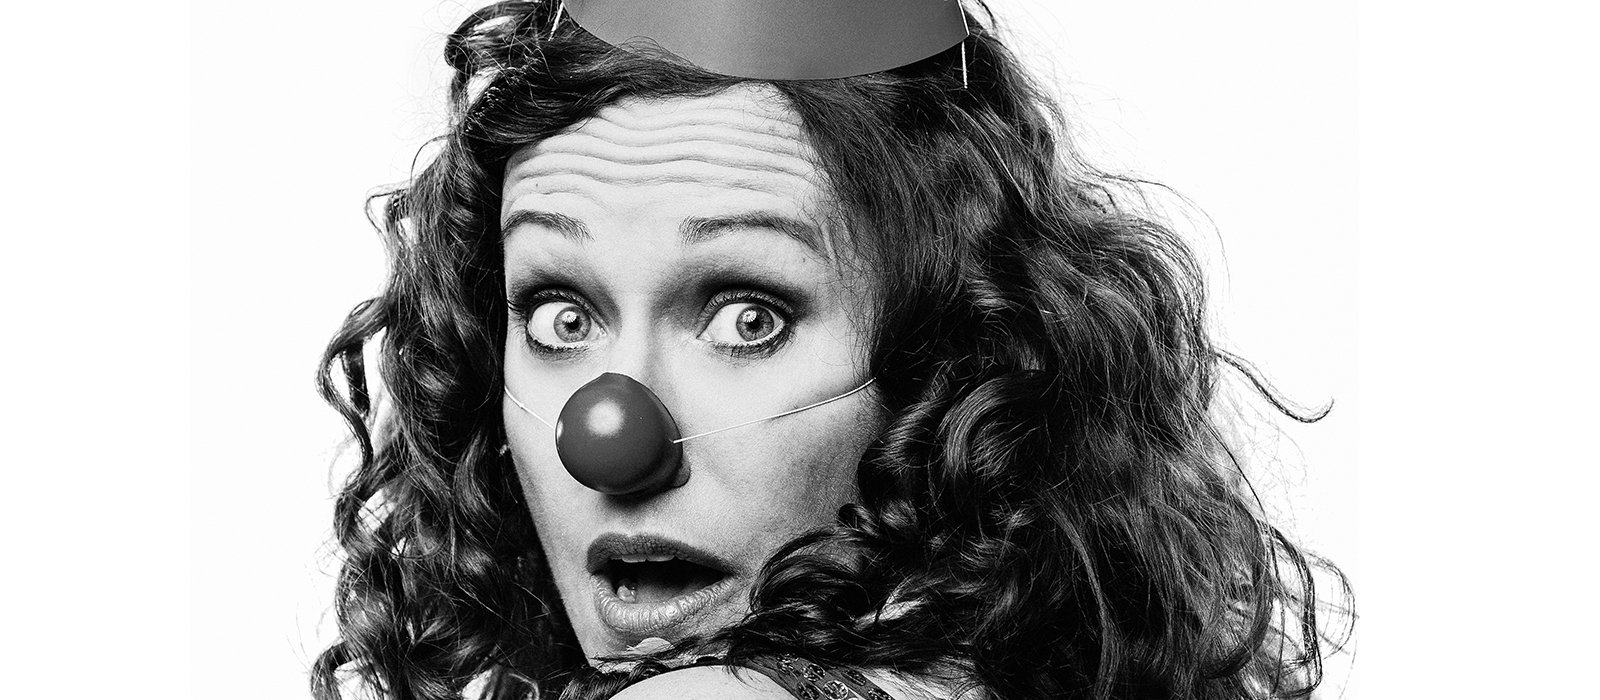 A performer from The Surprise looks back startled wearing a clown nose and party hat